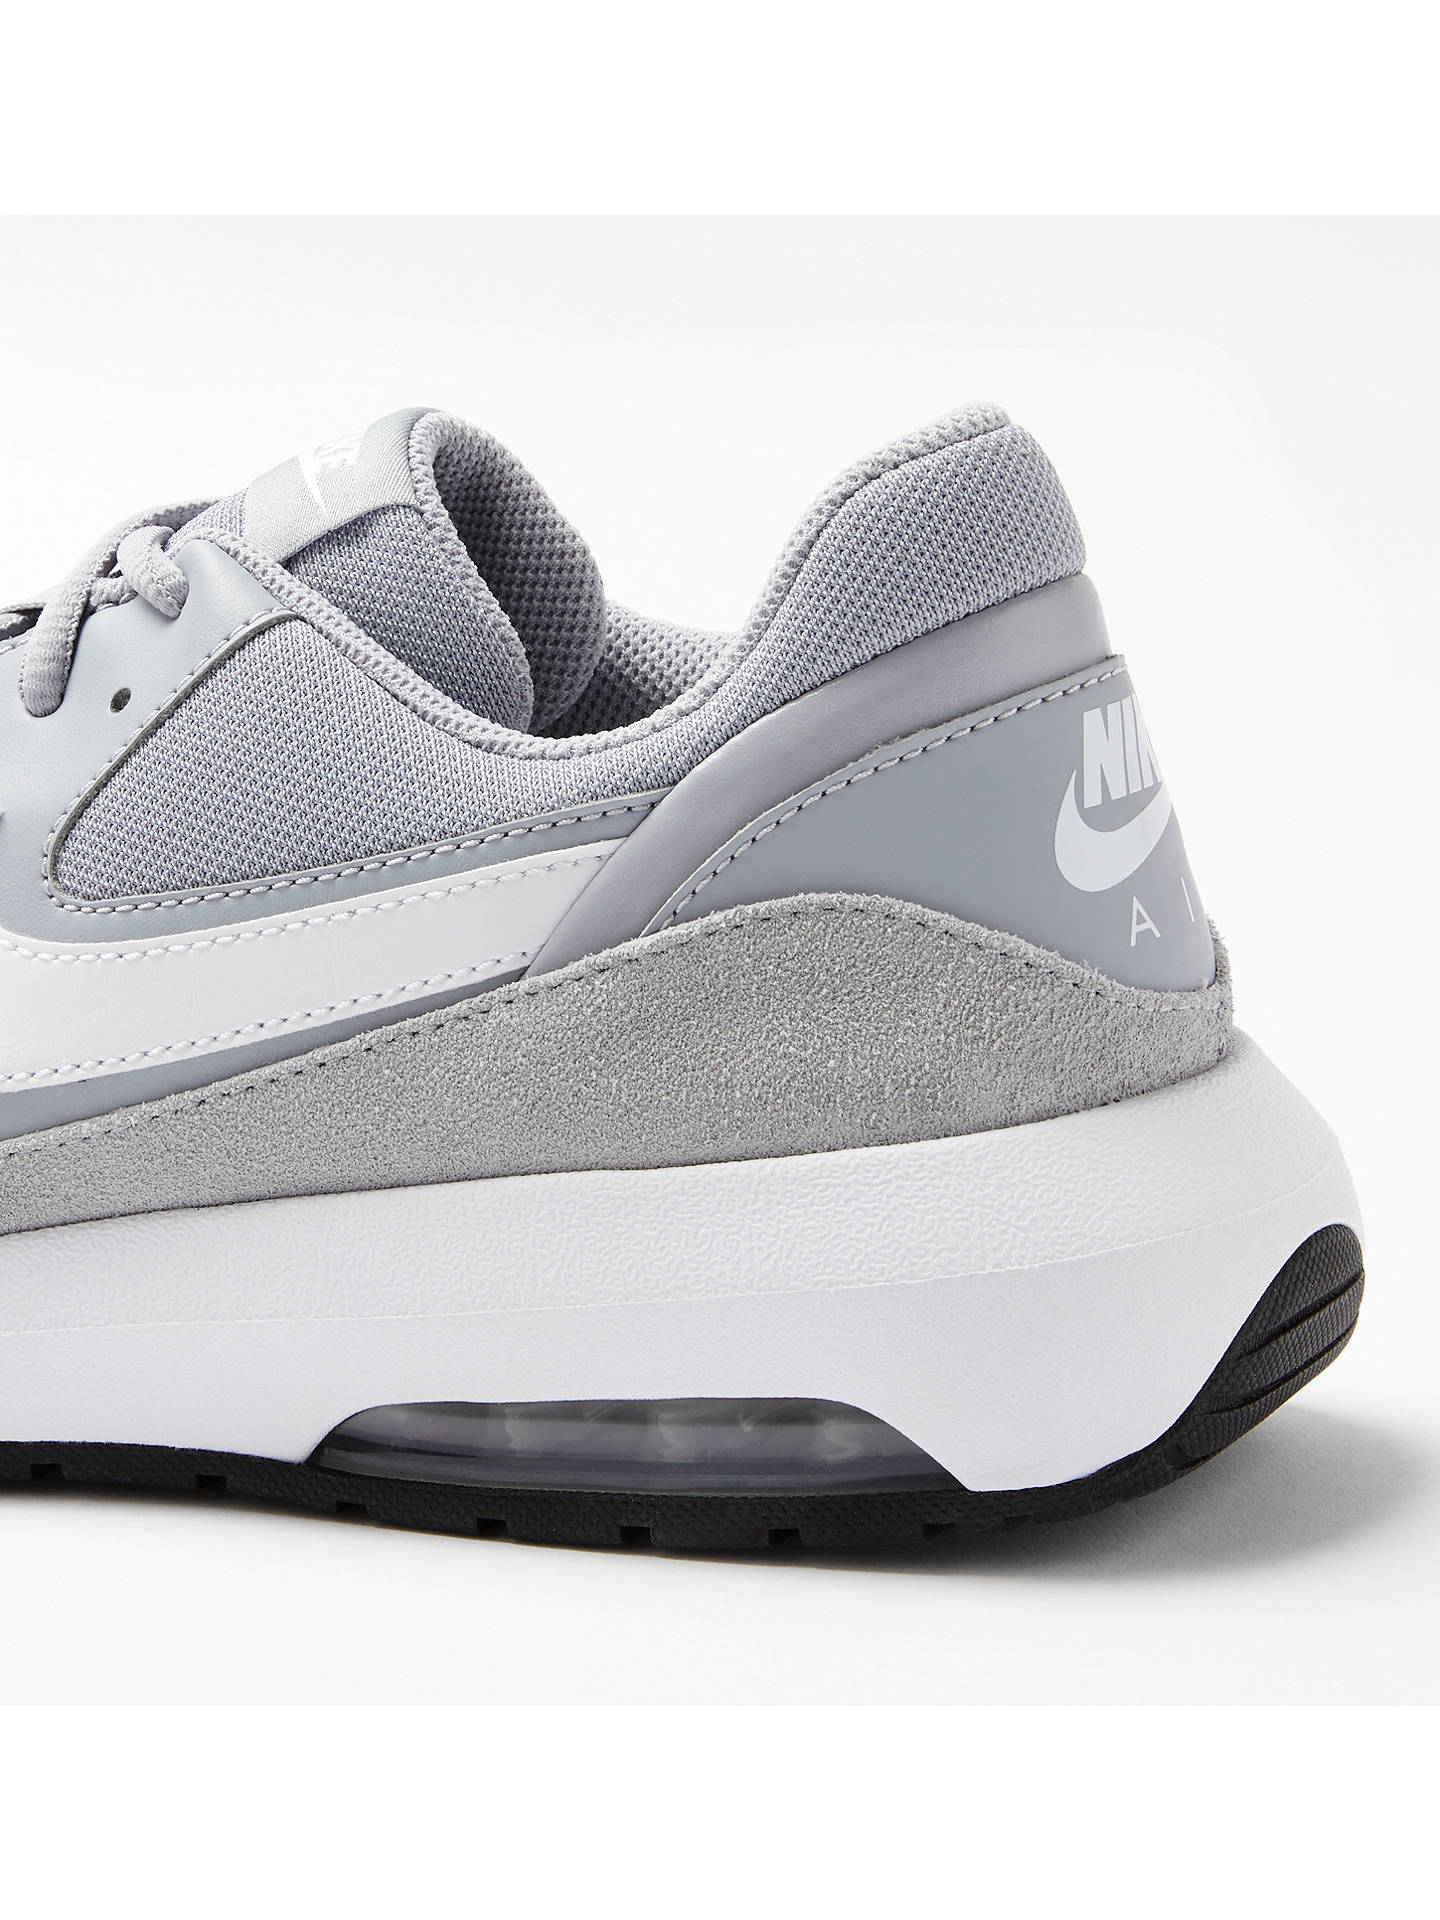 af7f368a7c ... Buy Nike Air Max 90 Essential Men s Trainers